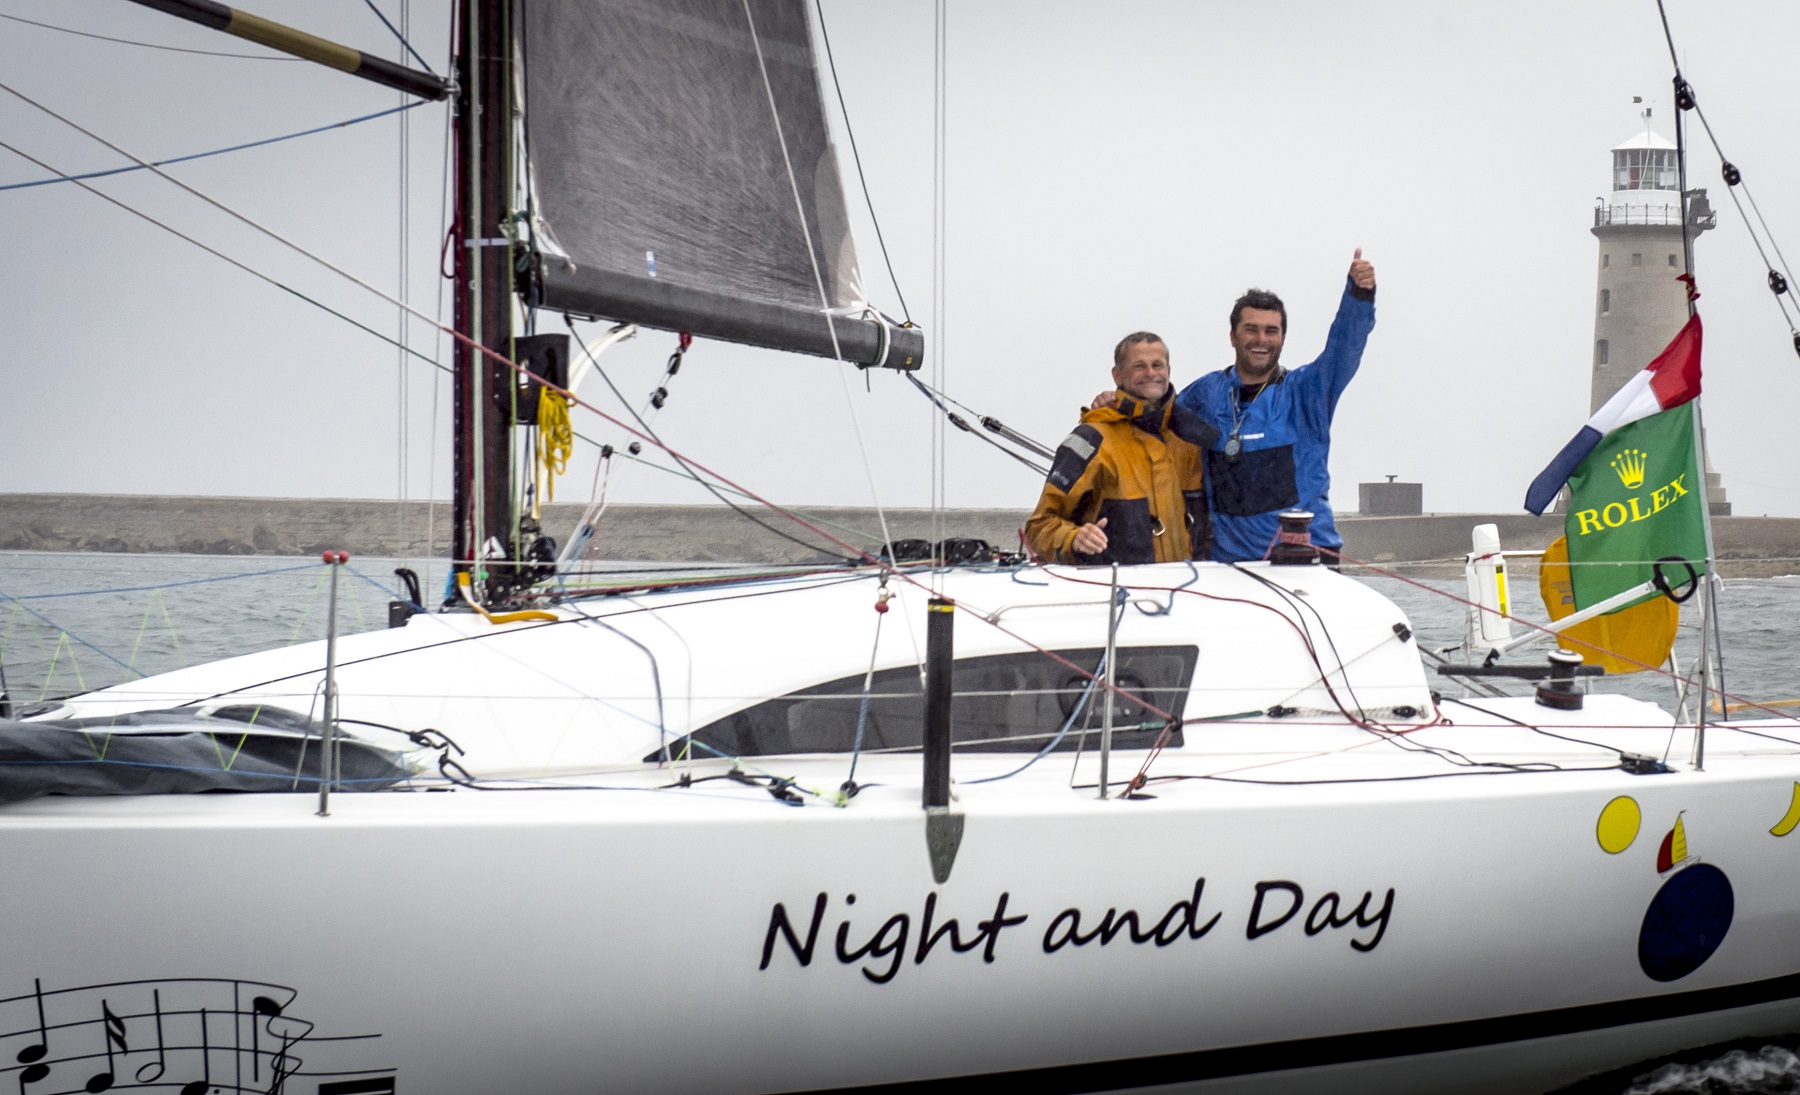 The 2013 race saw the first overall winner sailing doublehanded - Pascal Loison and son Alexis aboard their JPK 10.10 Night and Day © ROLEX/Kurt Arrigo